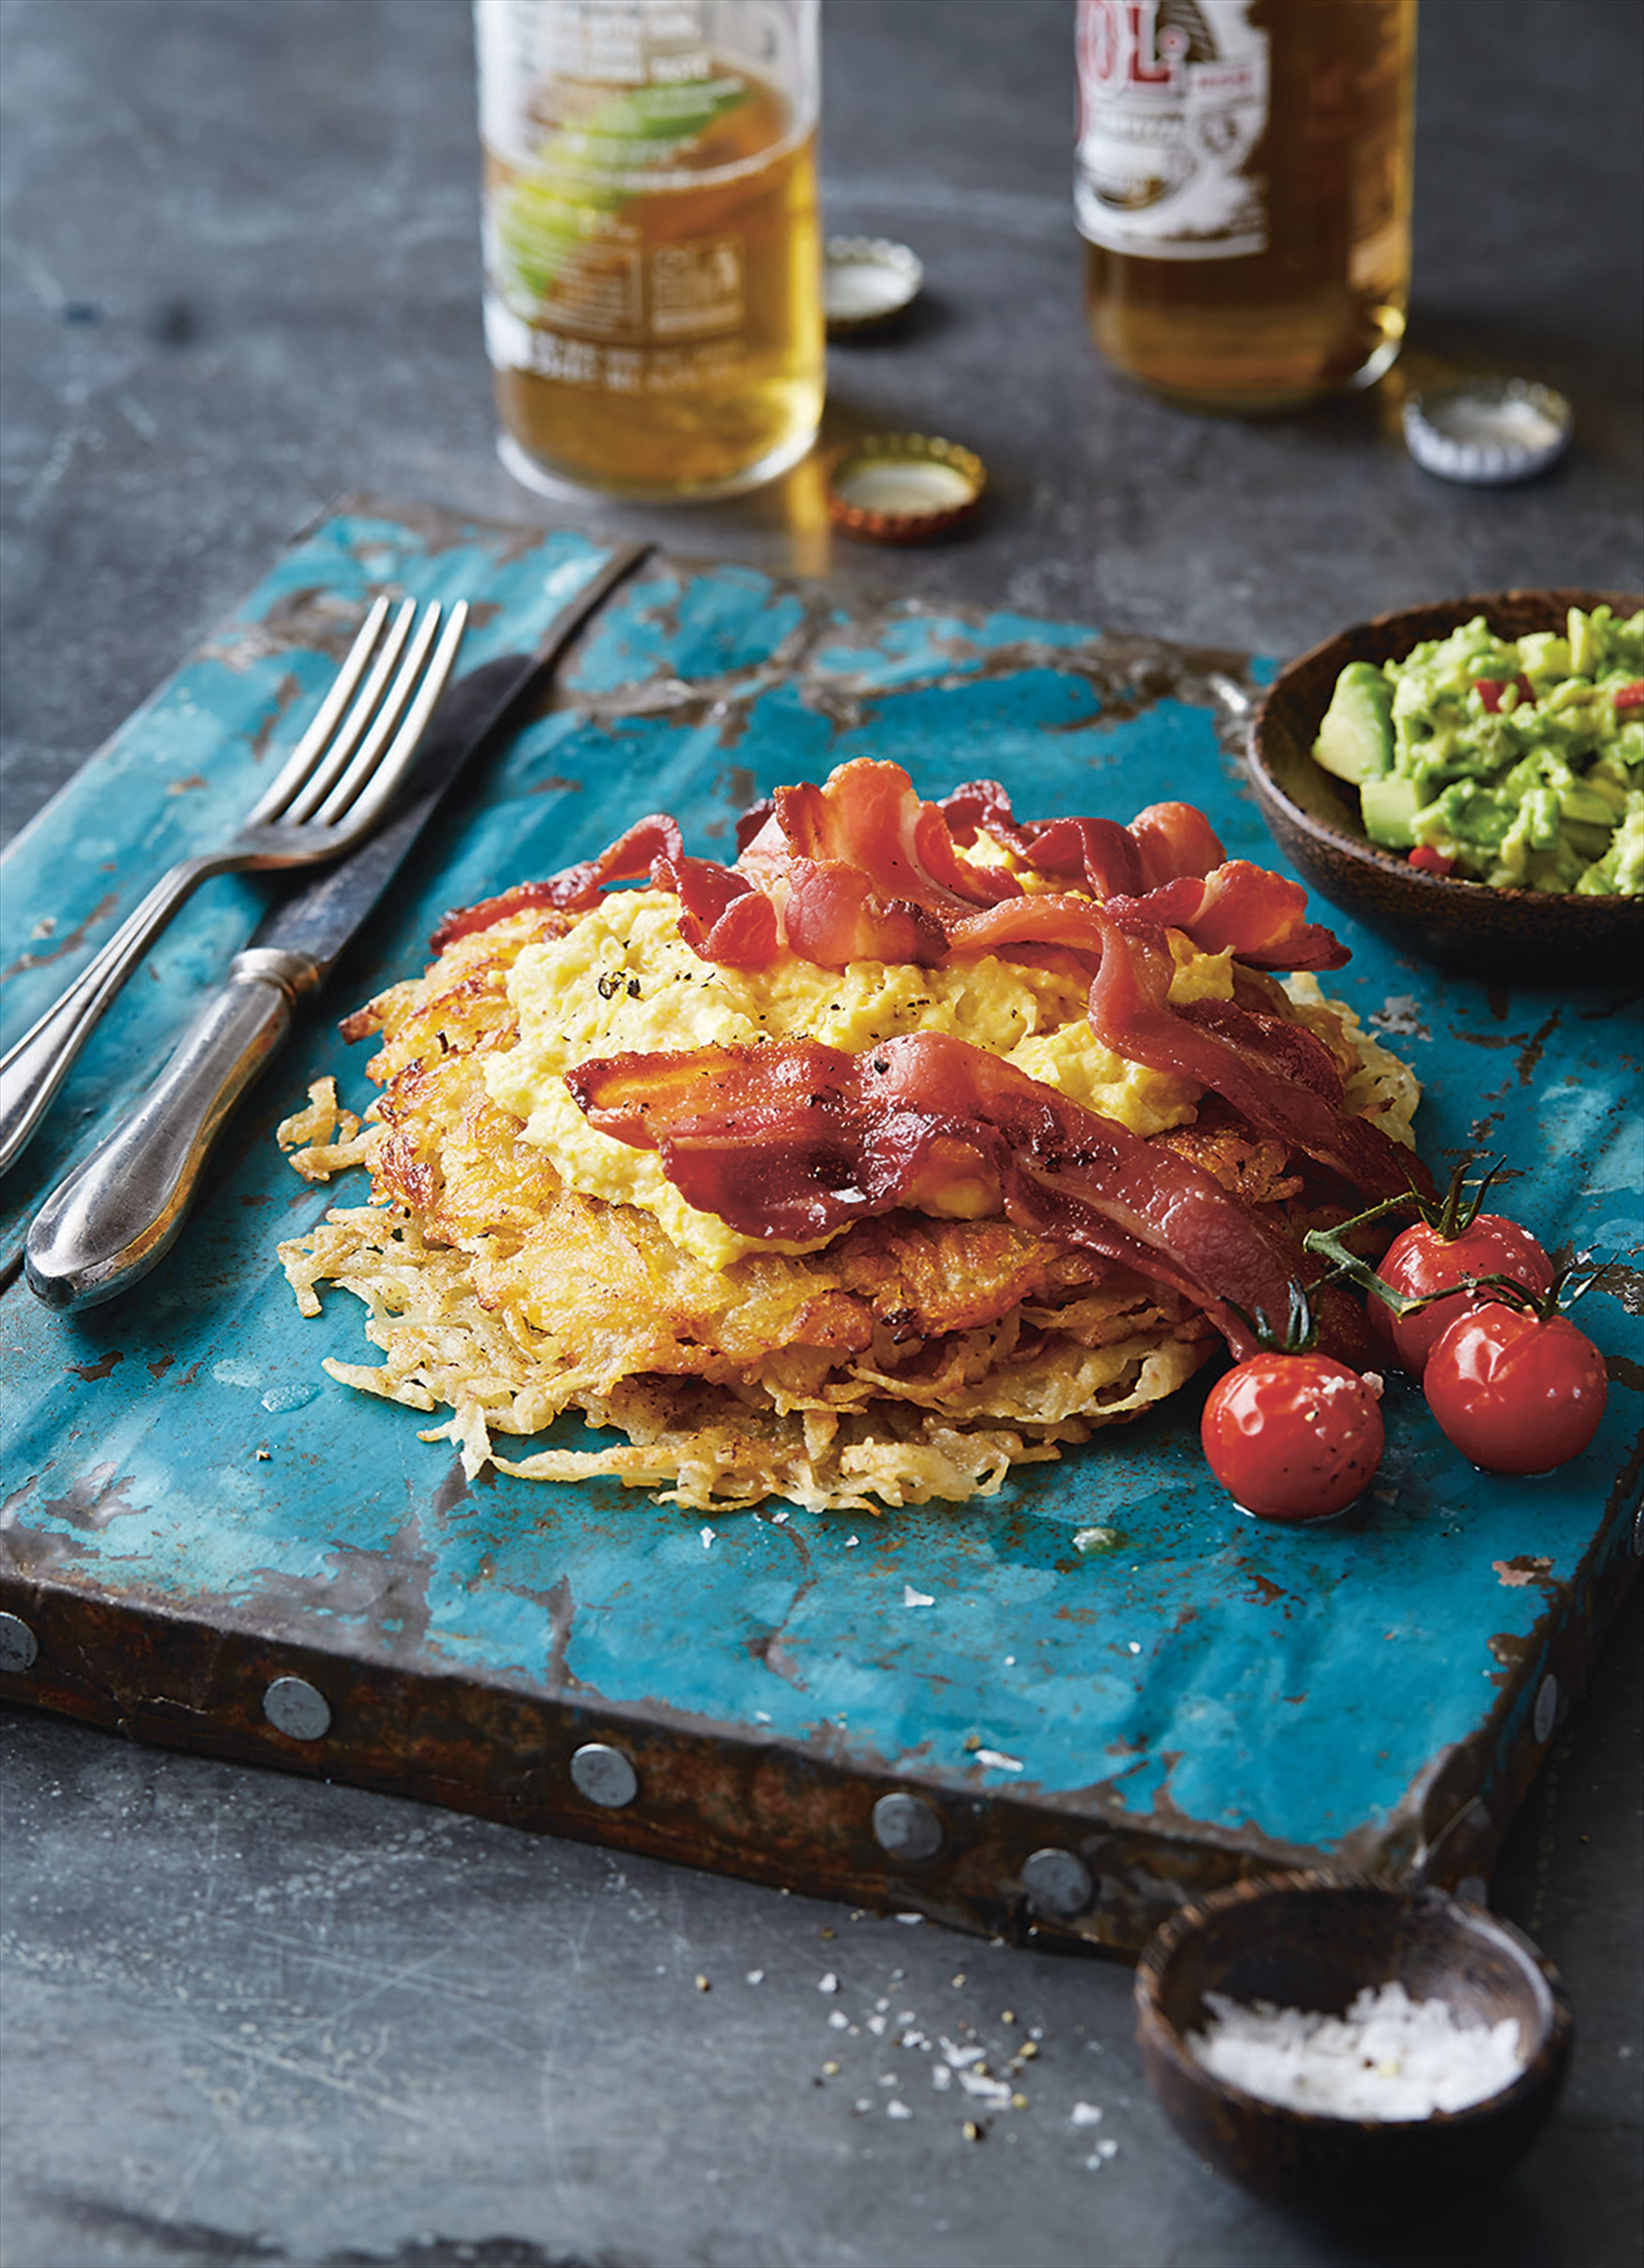 Streaky bacon with creamed corn on hash browns